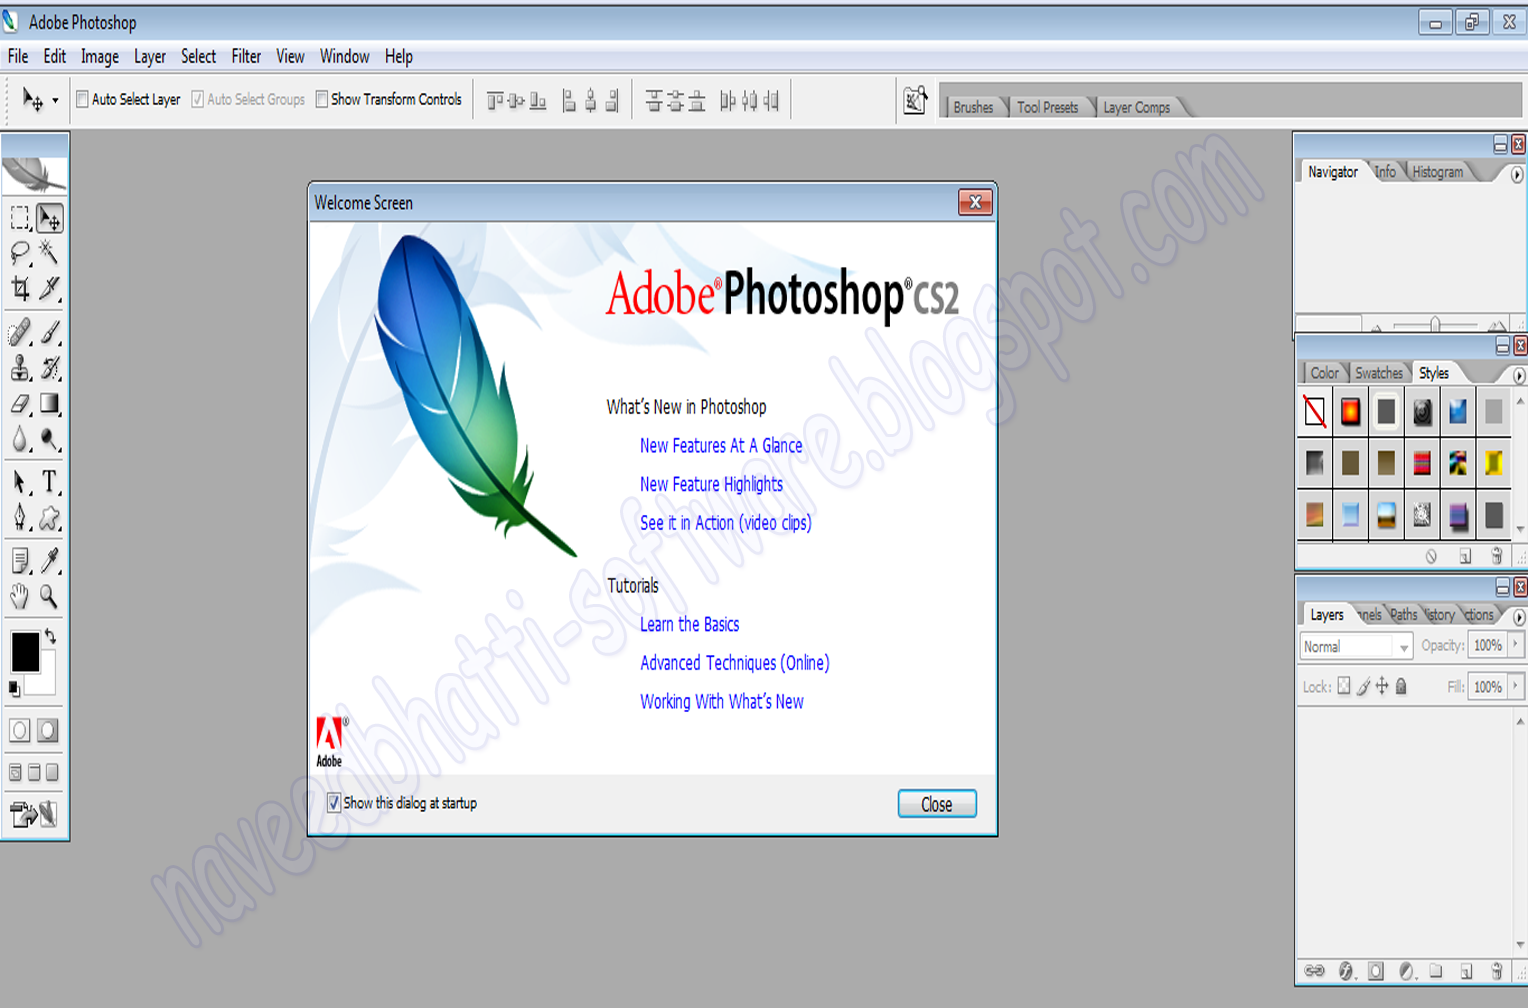 Adobe photoshop cs2 studio keygen generator